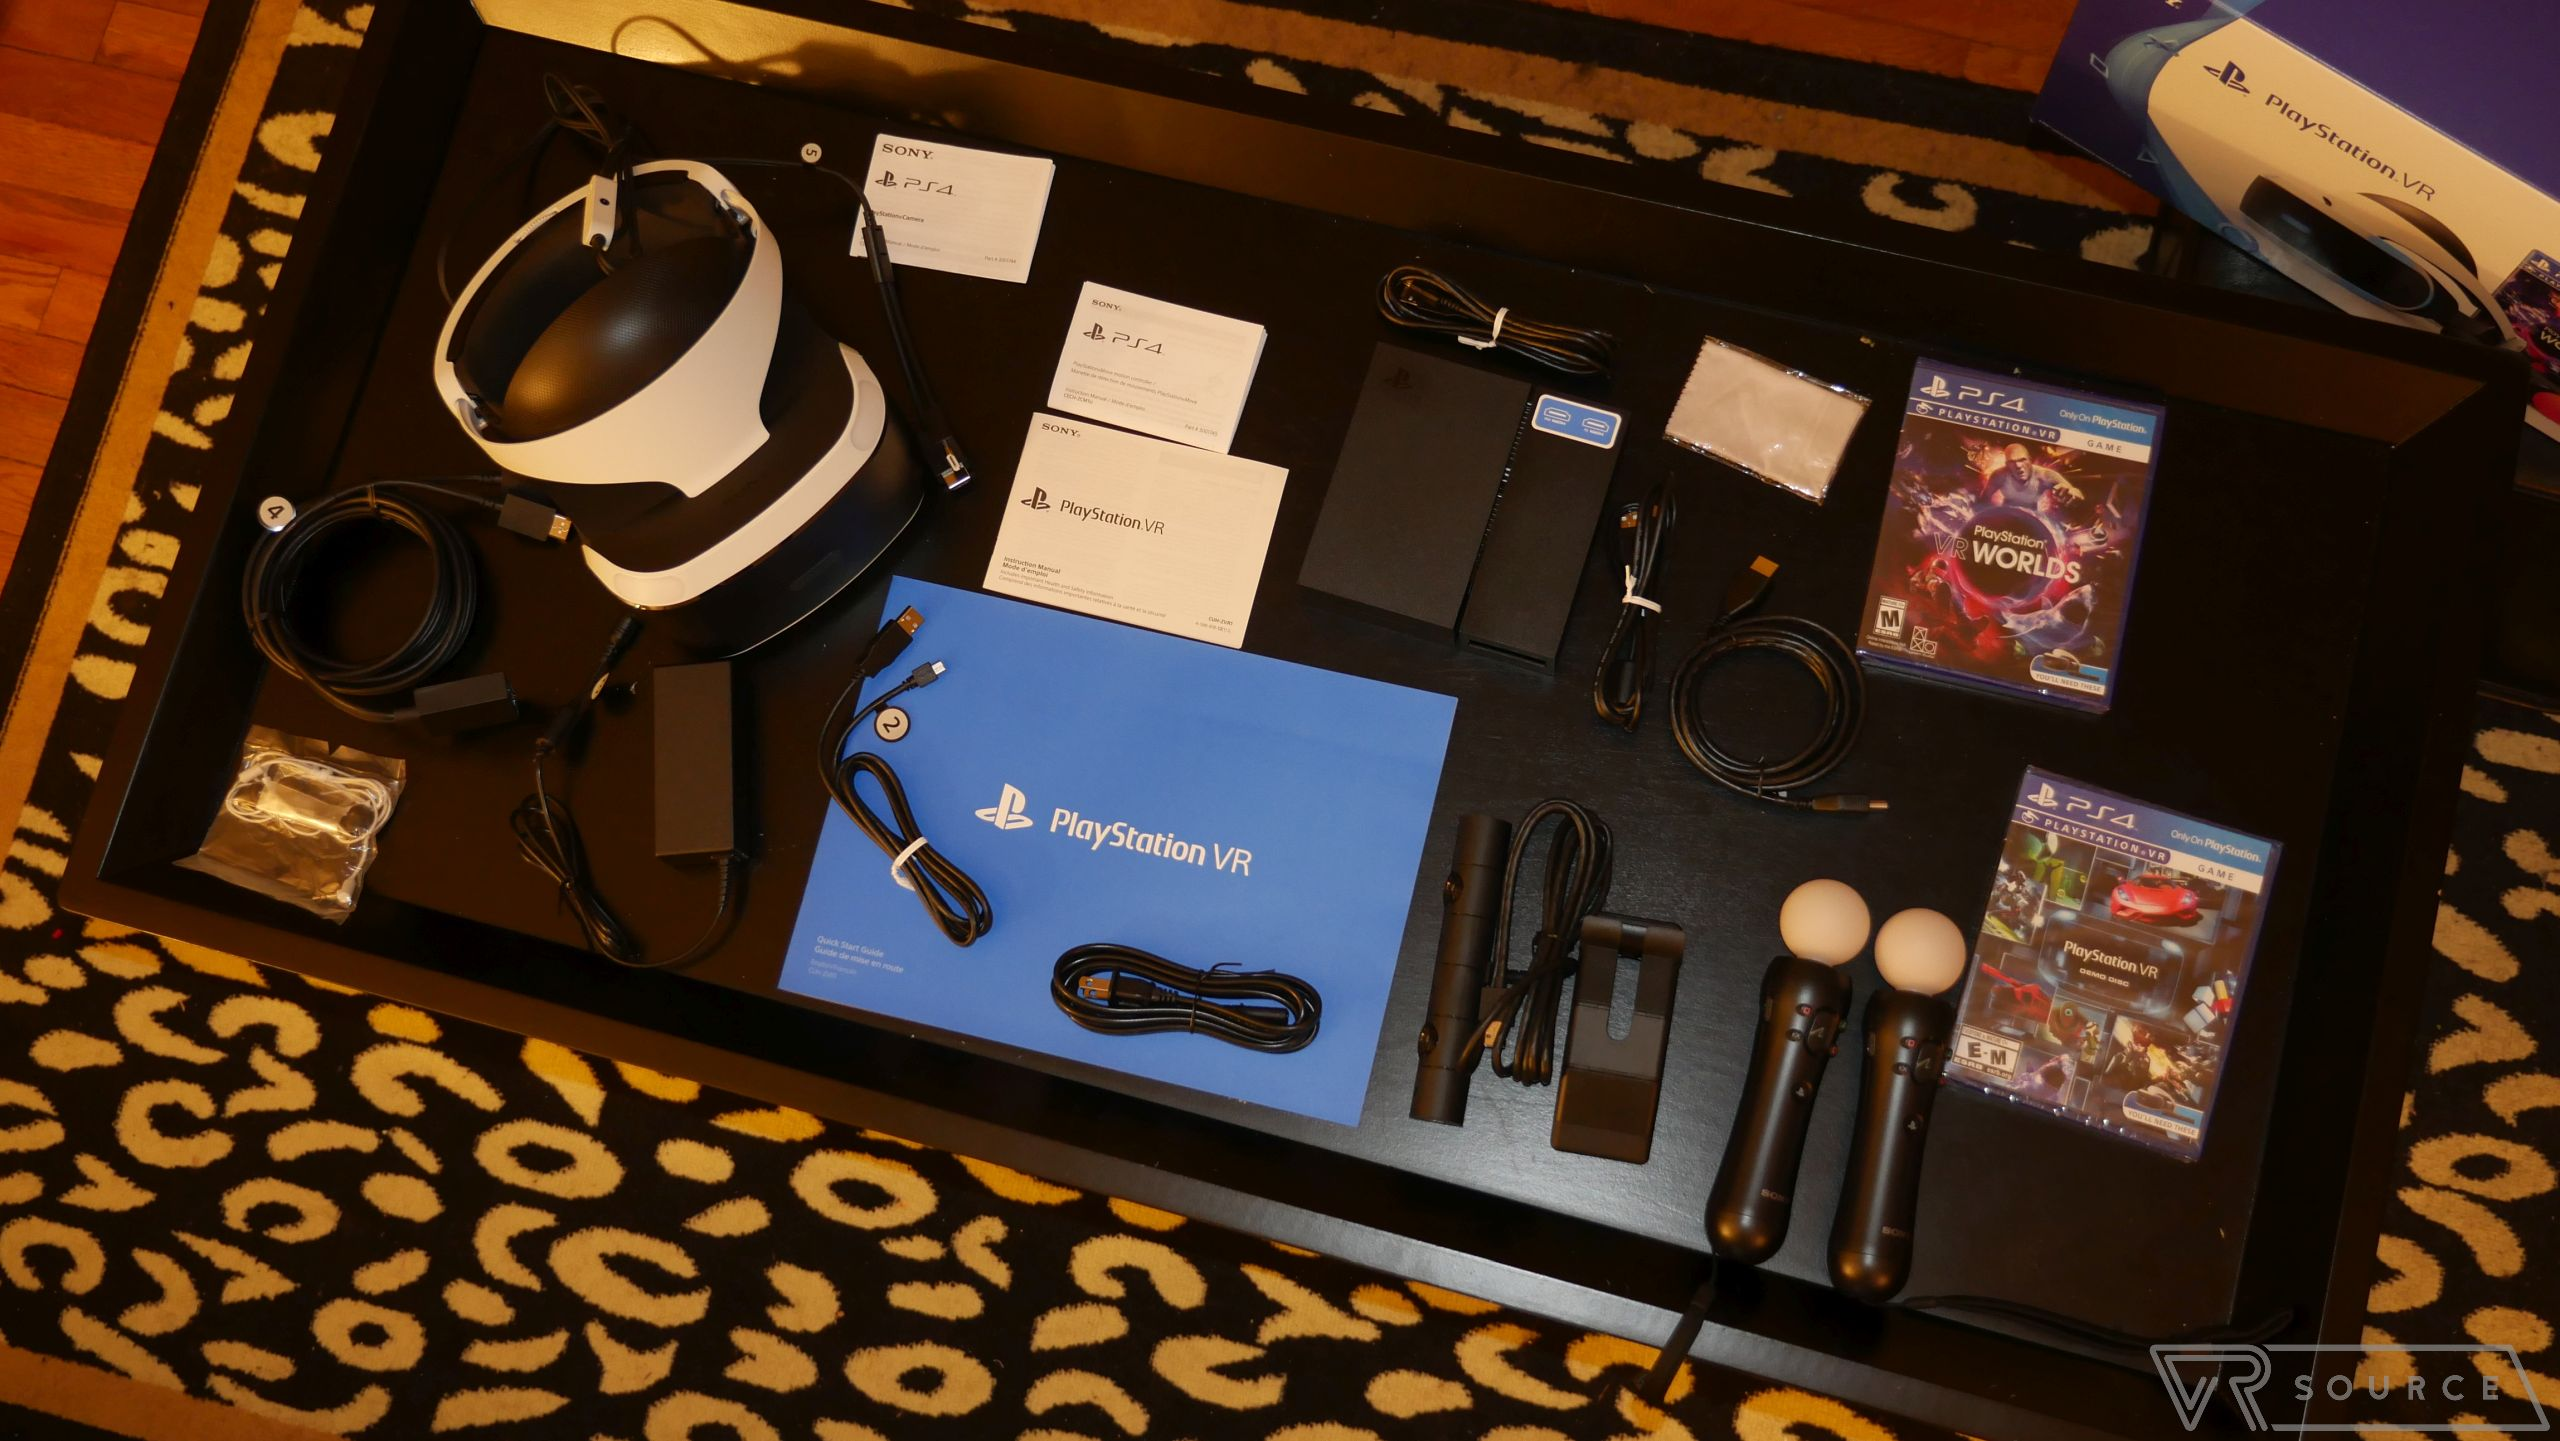 Sony PlayStation VR unboxing - VR Source